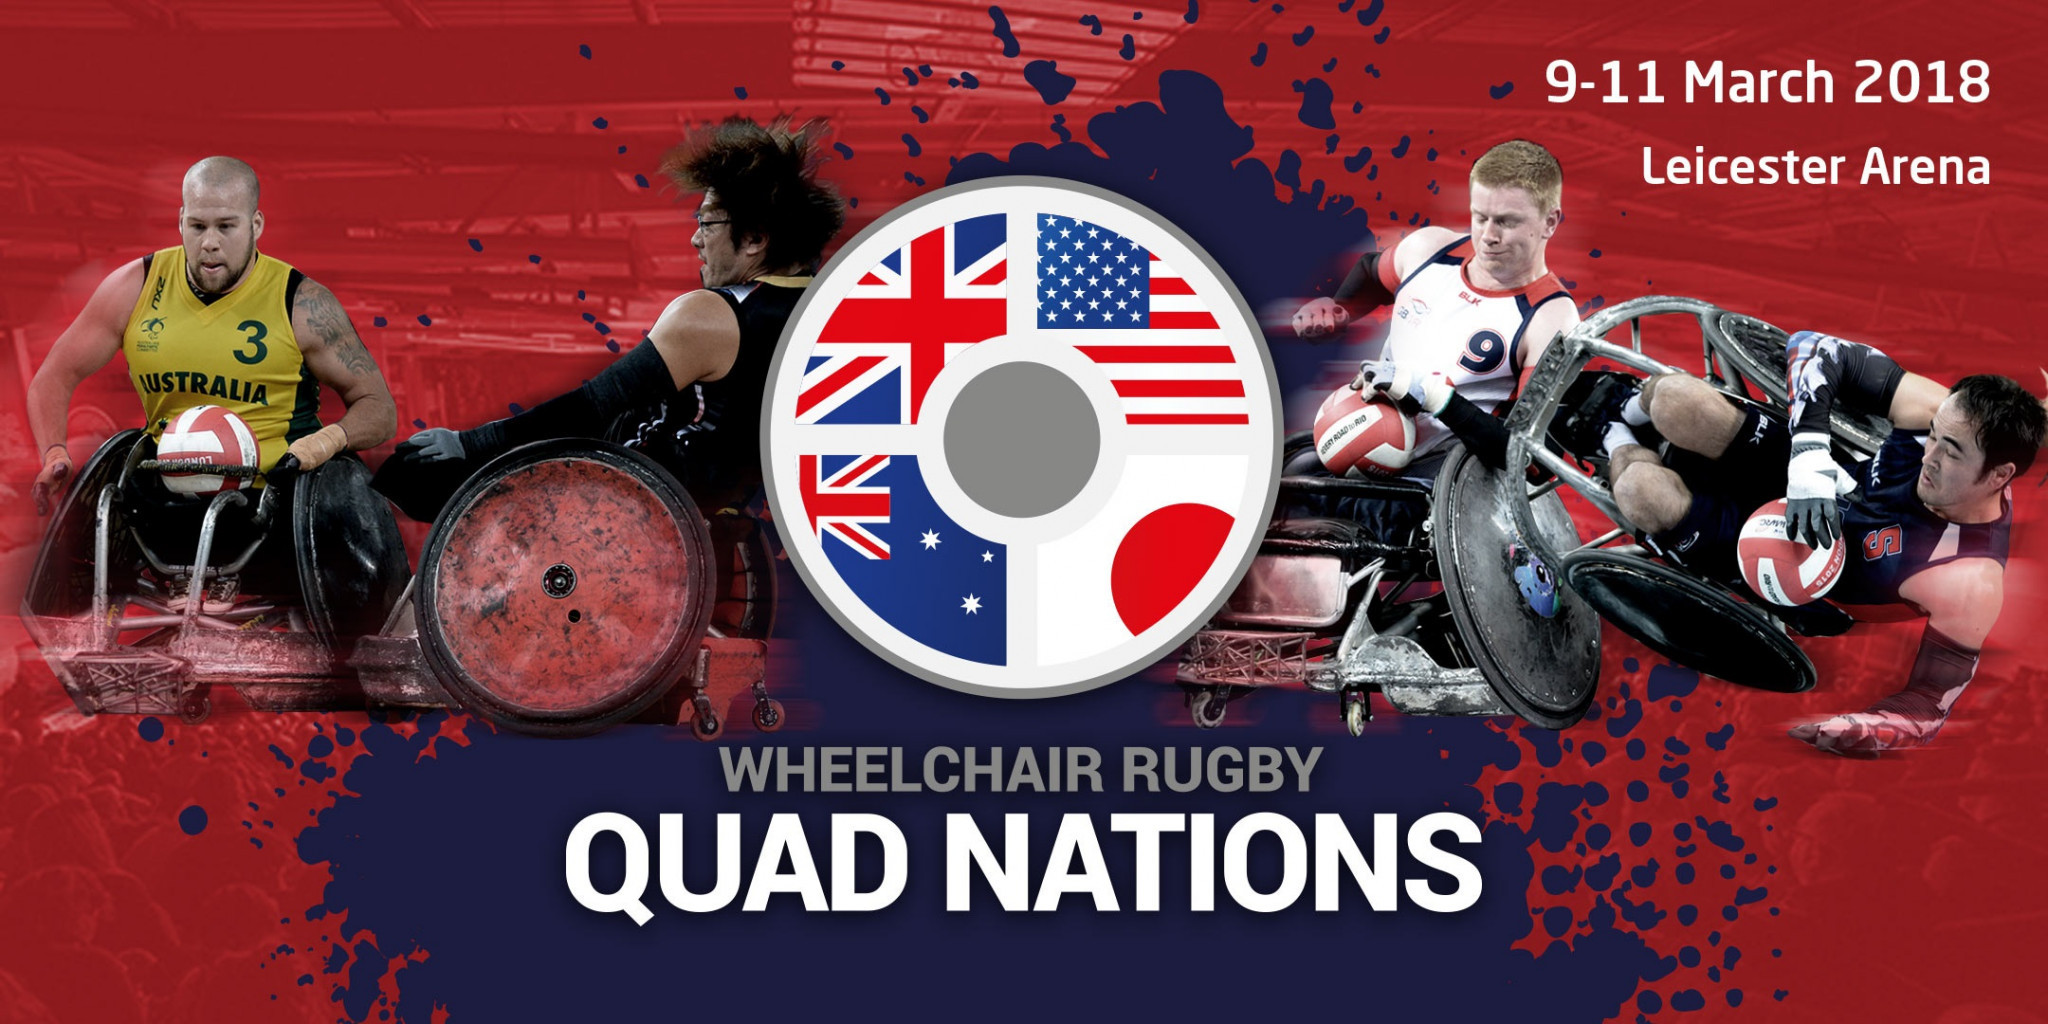 King Power named as title sponsor of inaugural Wheelchair Rugby Quad Nations tournament